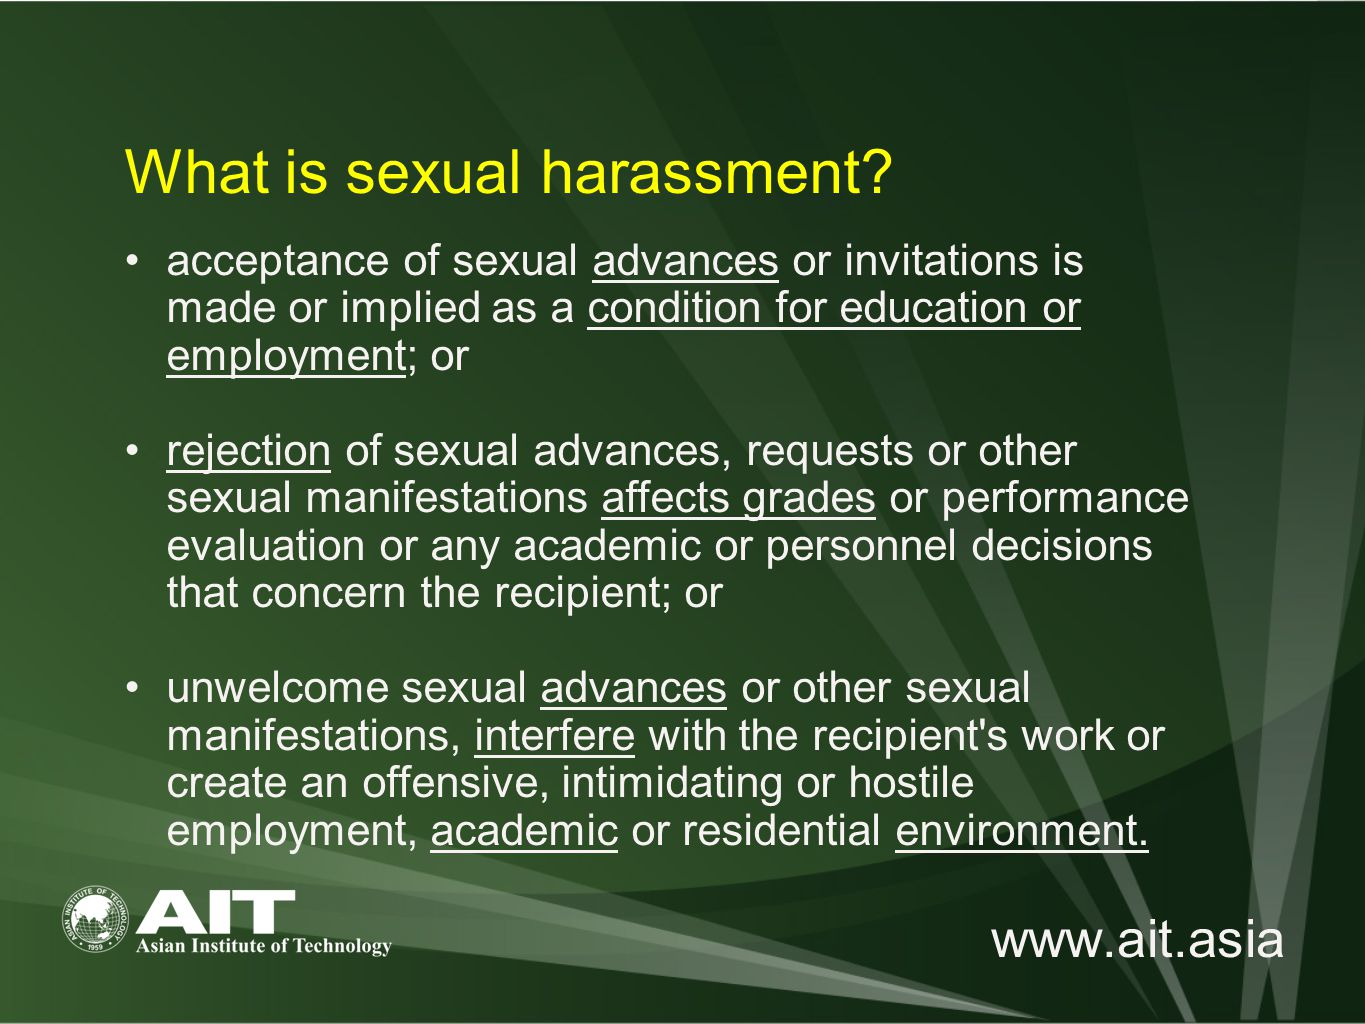 www.ait.asia acceptance of sexual advances or invitations is made or implied as a condition for education or employment; or rejection of sexual advances, requests or other sexual manifestations affects grades or performance evaluation or any academic or personnel decisions that concern the recipient; or unwelcome sexual advances or other sexual manifestations, interfere with the recipient s work or create an offensive, intimidating or hostile employment, academic or residential environment.